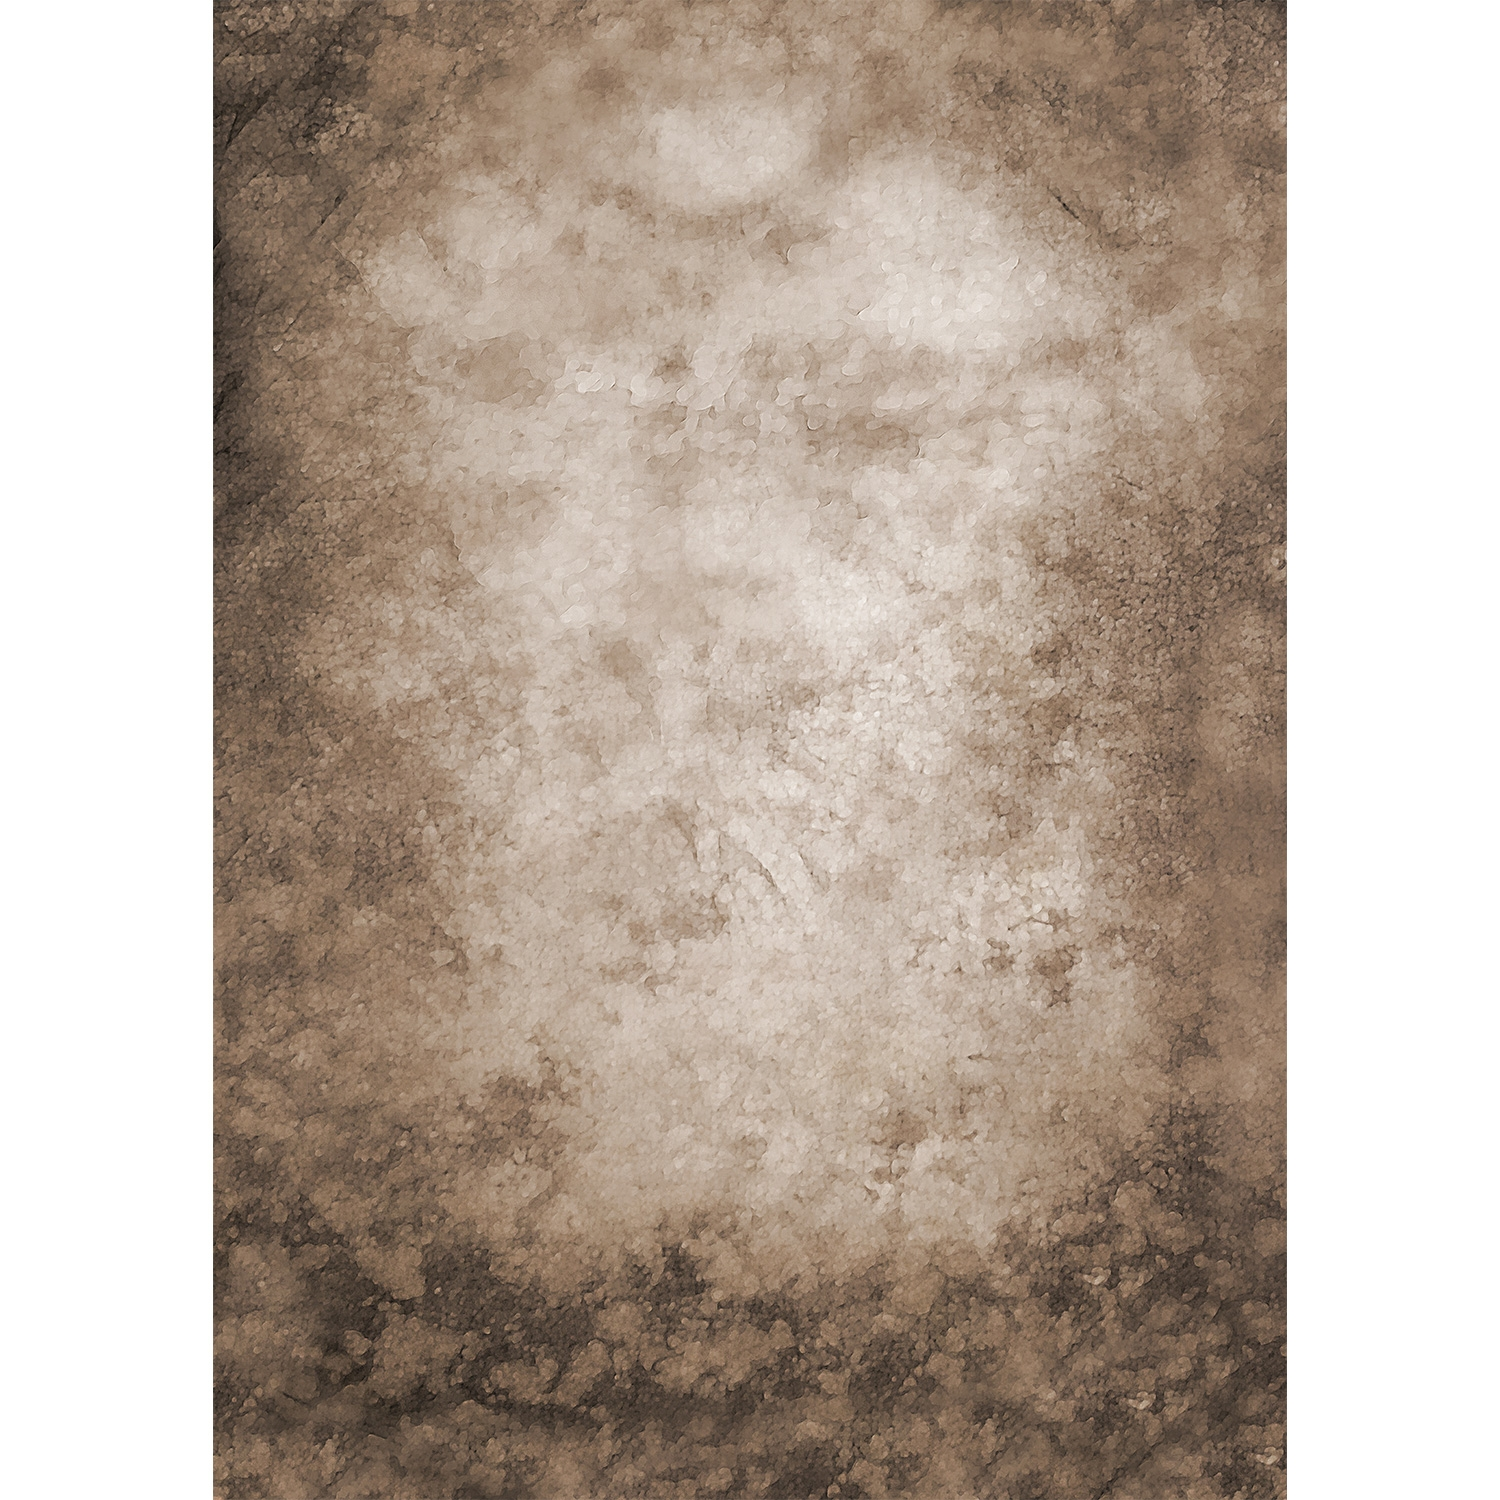 X-Drop Vinyl Backdrop - Rustic Latte (5' x 7')